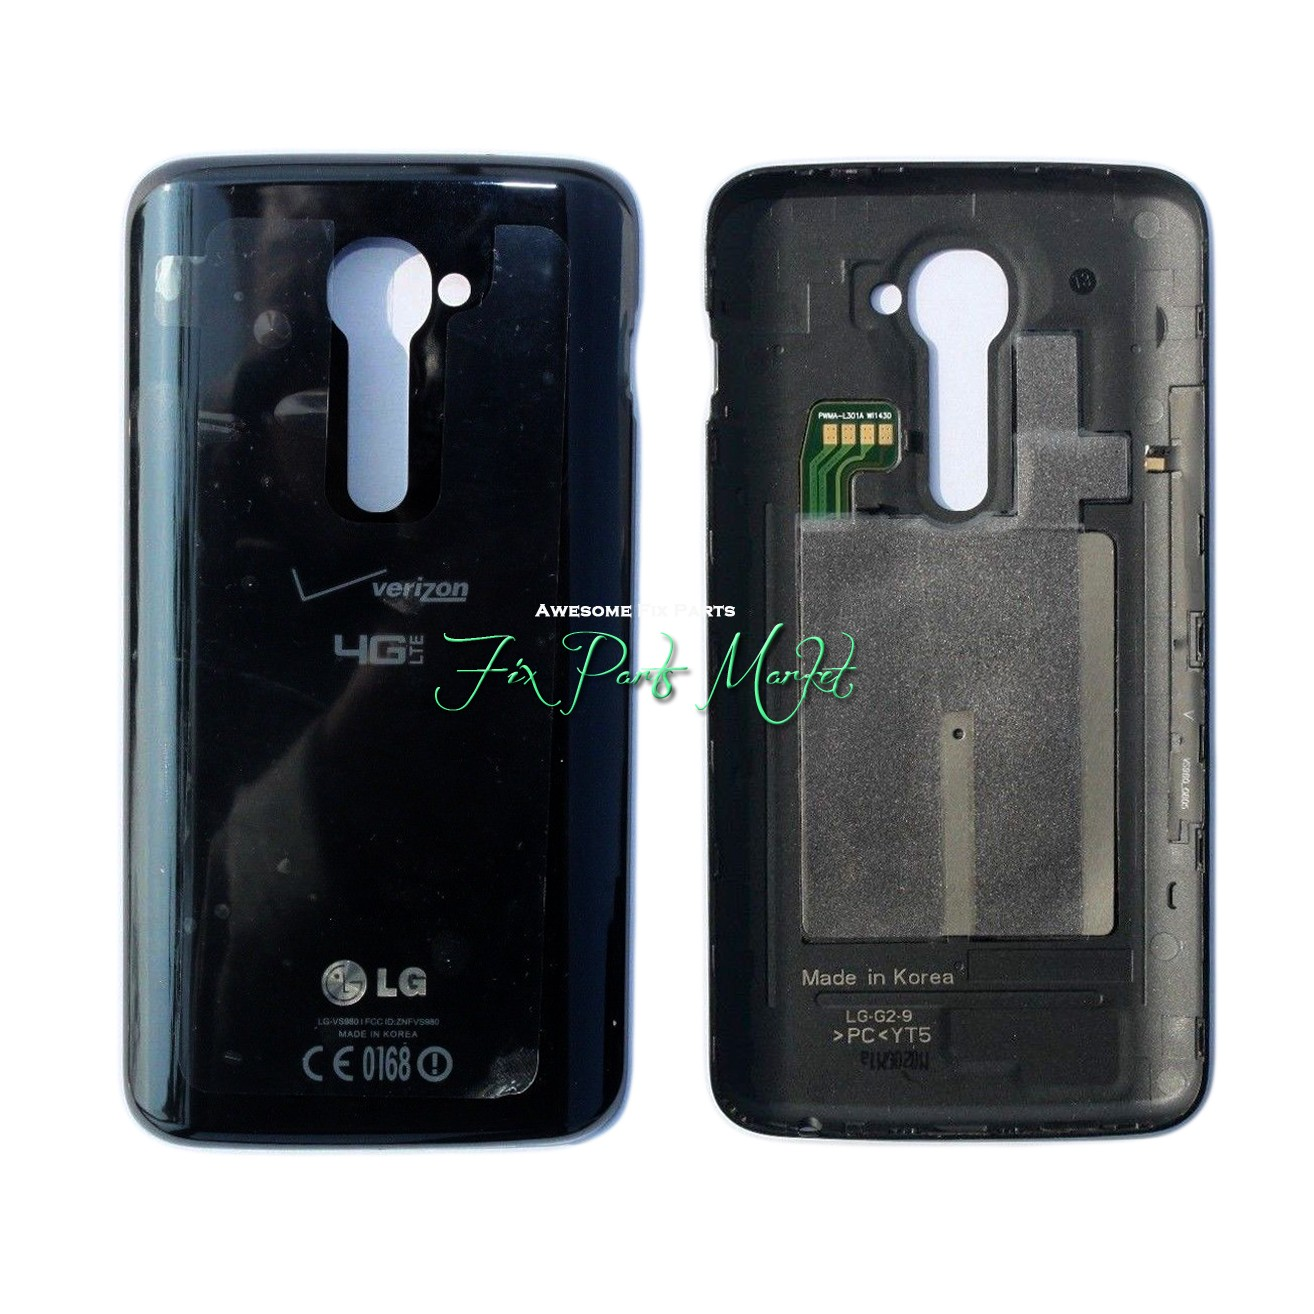 new styles d6b8e 45765 Details about Back Cover Case Rear Battery Door Cover for LG G2 Verizon  VS980 With NFC - Black